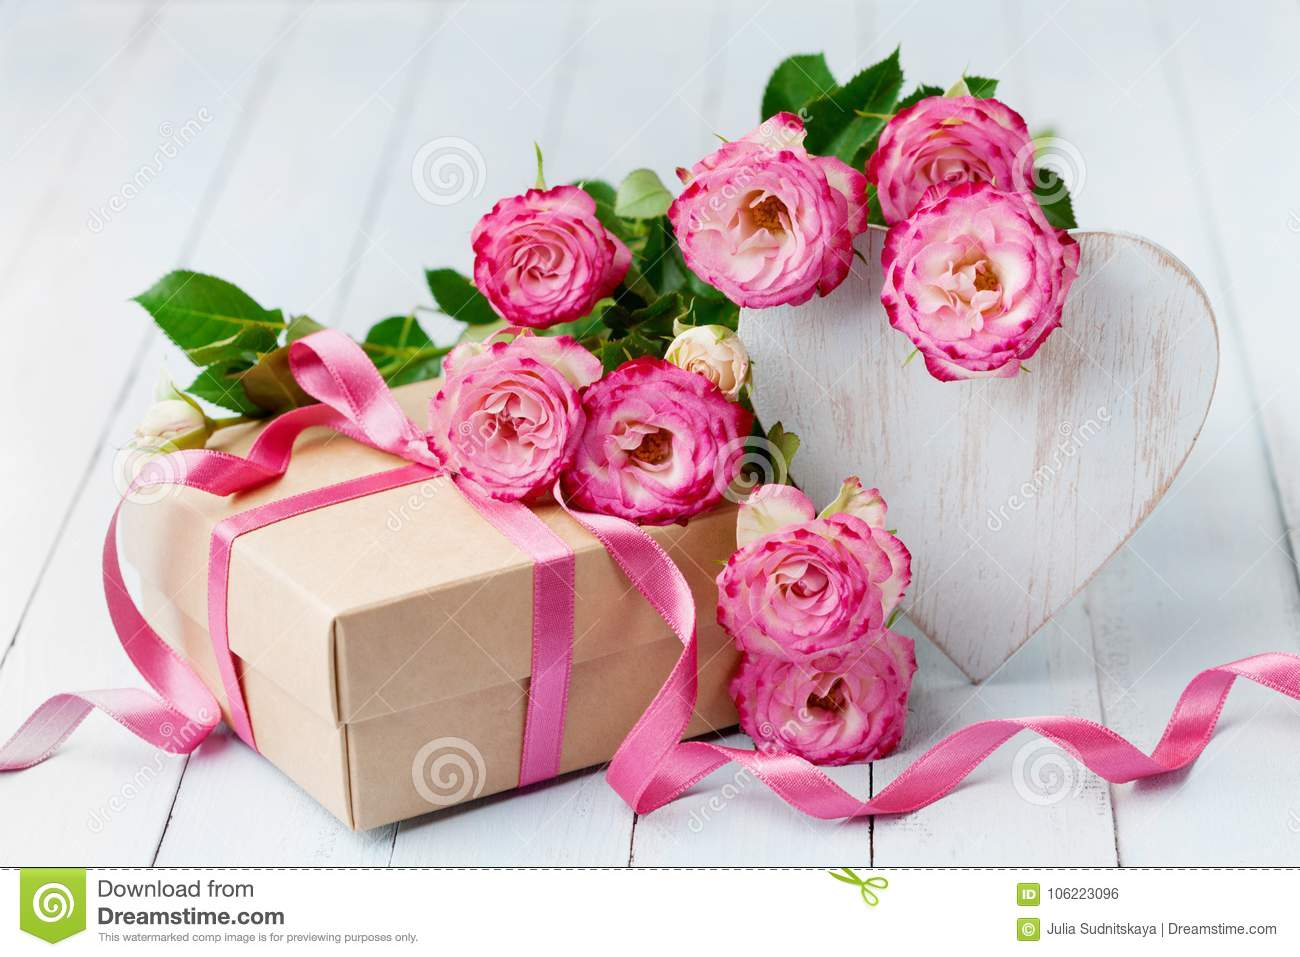 Rose flowers, wooden heart and gift box on blue rustic table. Beautiful greeting card for Birthday, Woman or Mothers Day.